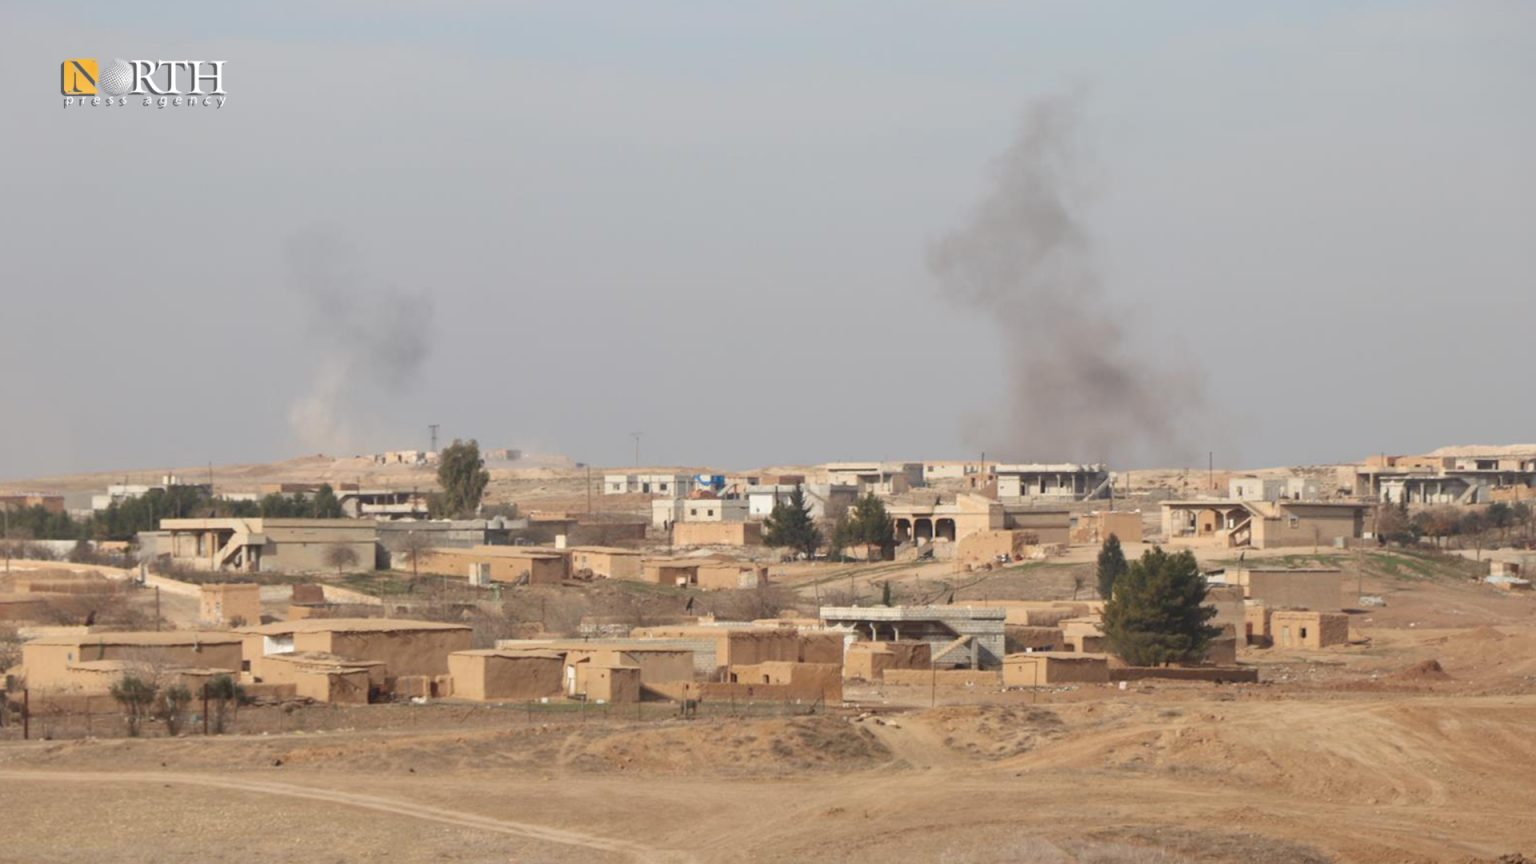 Smoke plumes rising from al-Dardara village in Tel Tamr countryside – North Press/archive